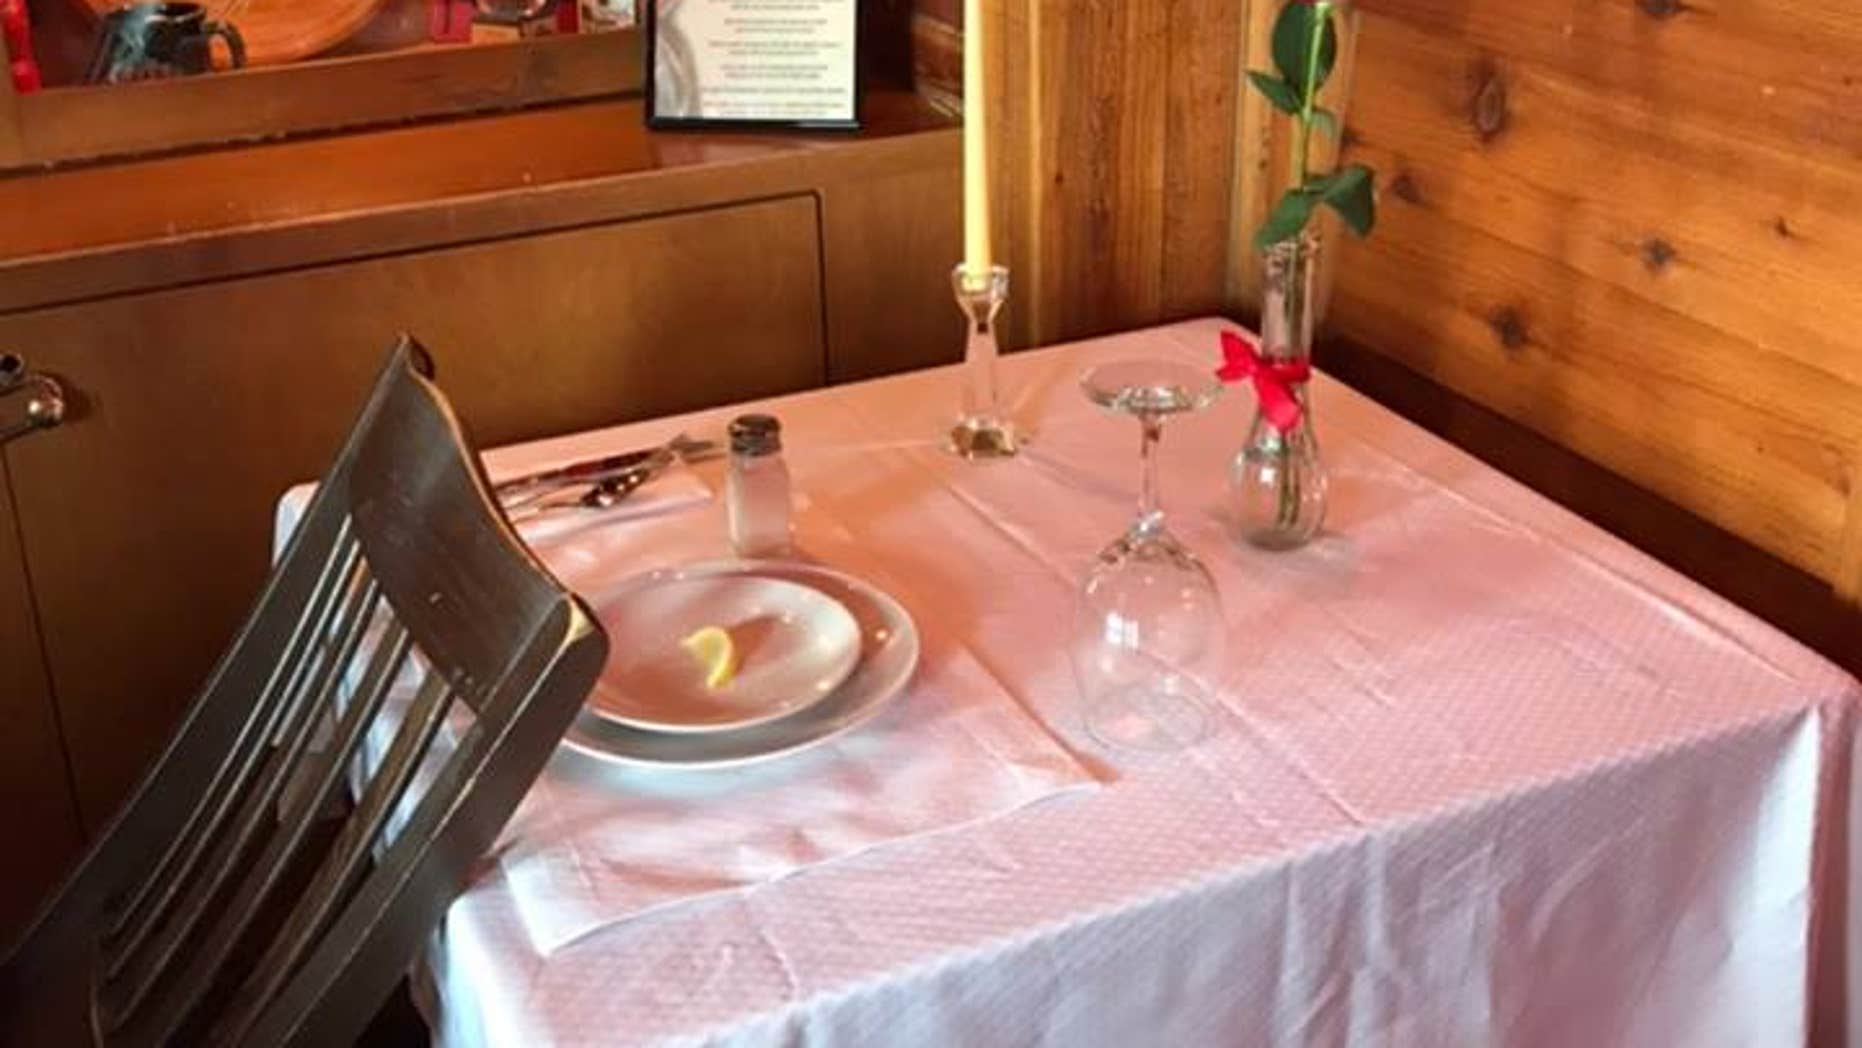 A Texas Roadhouse restaurant in Illinois is honoring McHenry County Sheriff's Deputy Jacob Keltner, who was killed in the line of duty on Thursday.